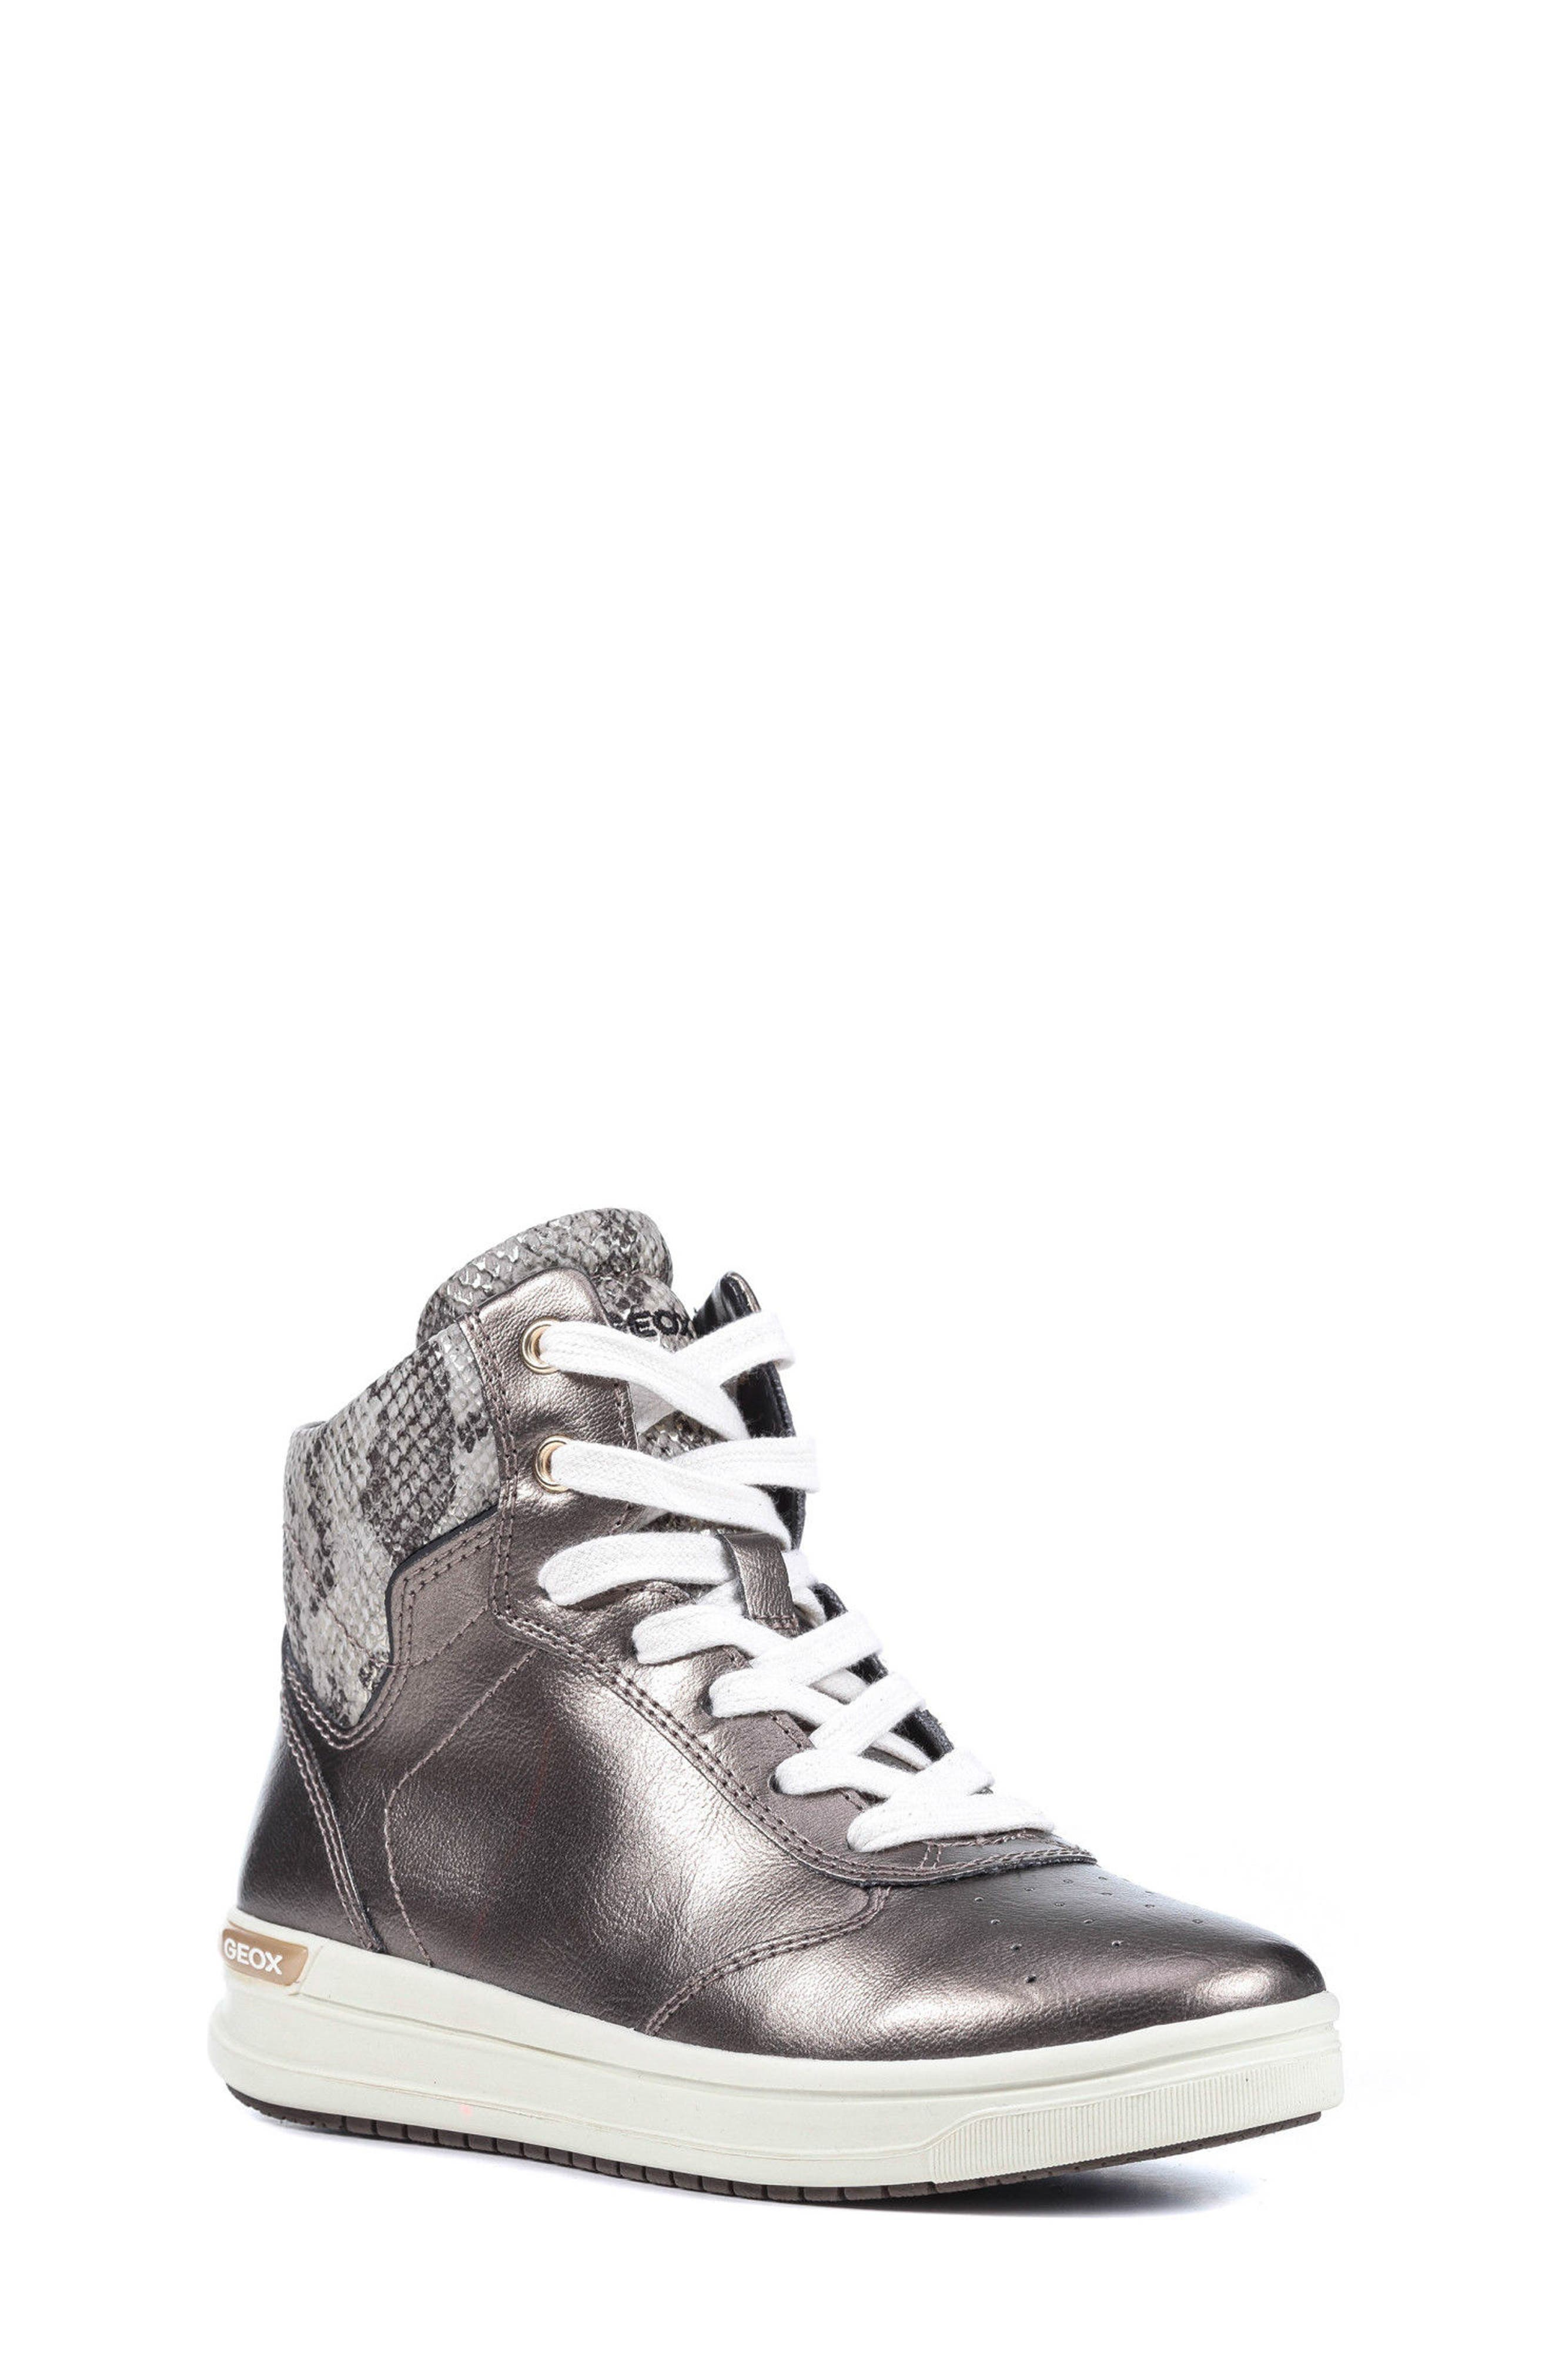 Cave Up Girl High Top Sneaker,                             Main thumbnail 2, color,